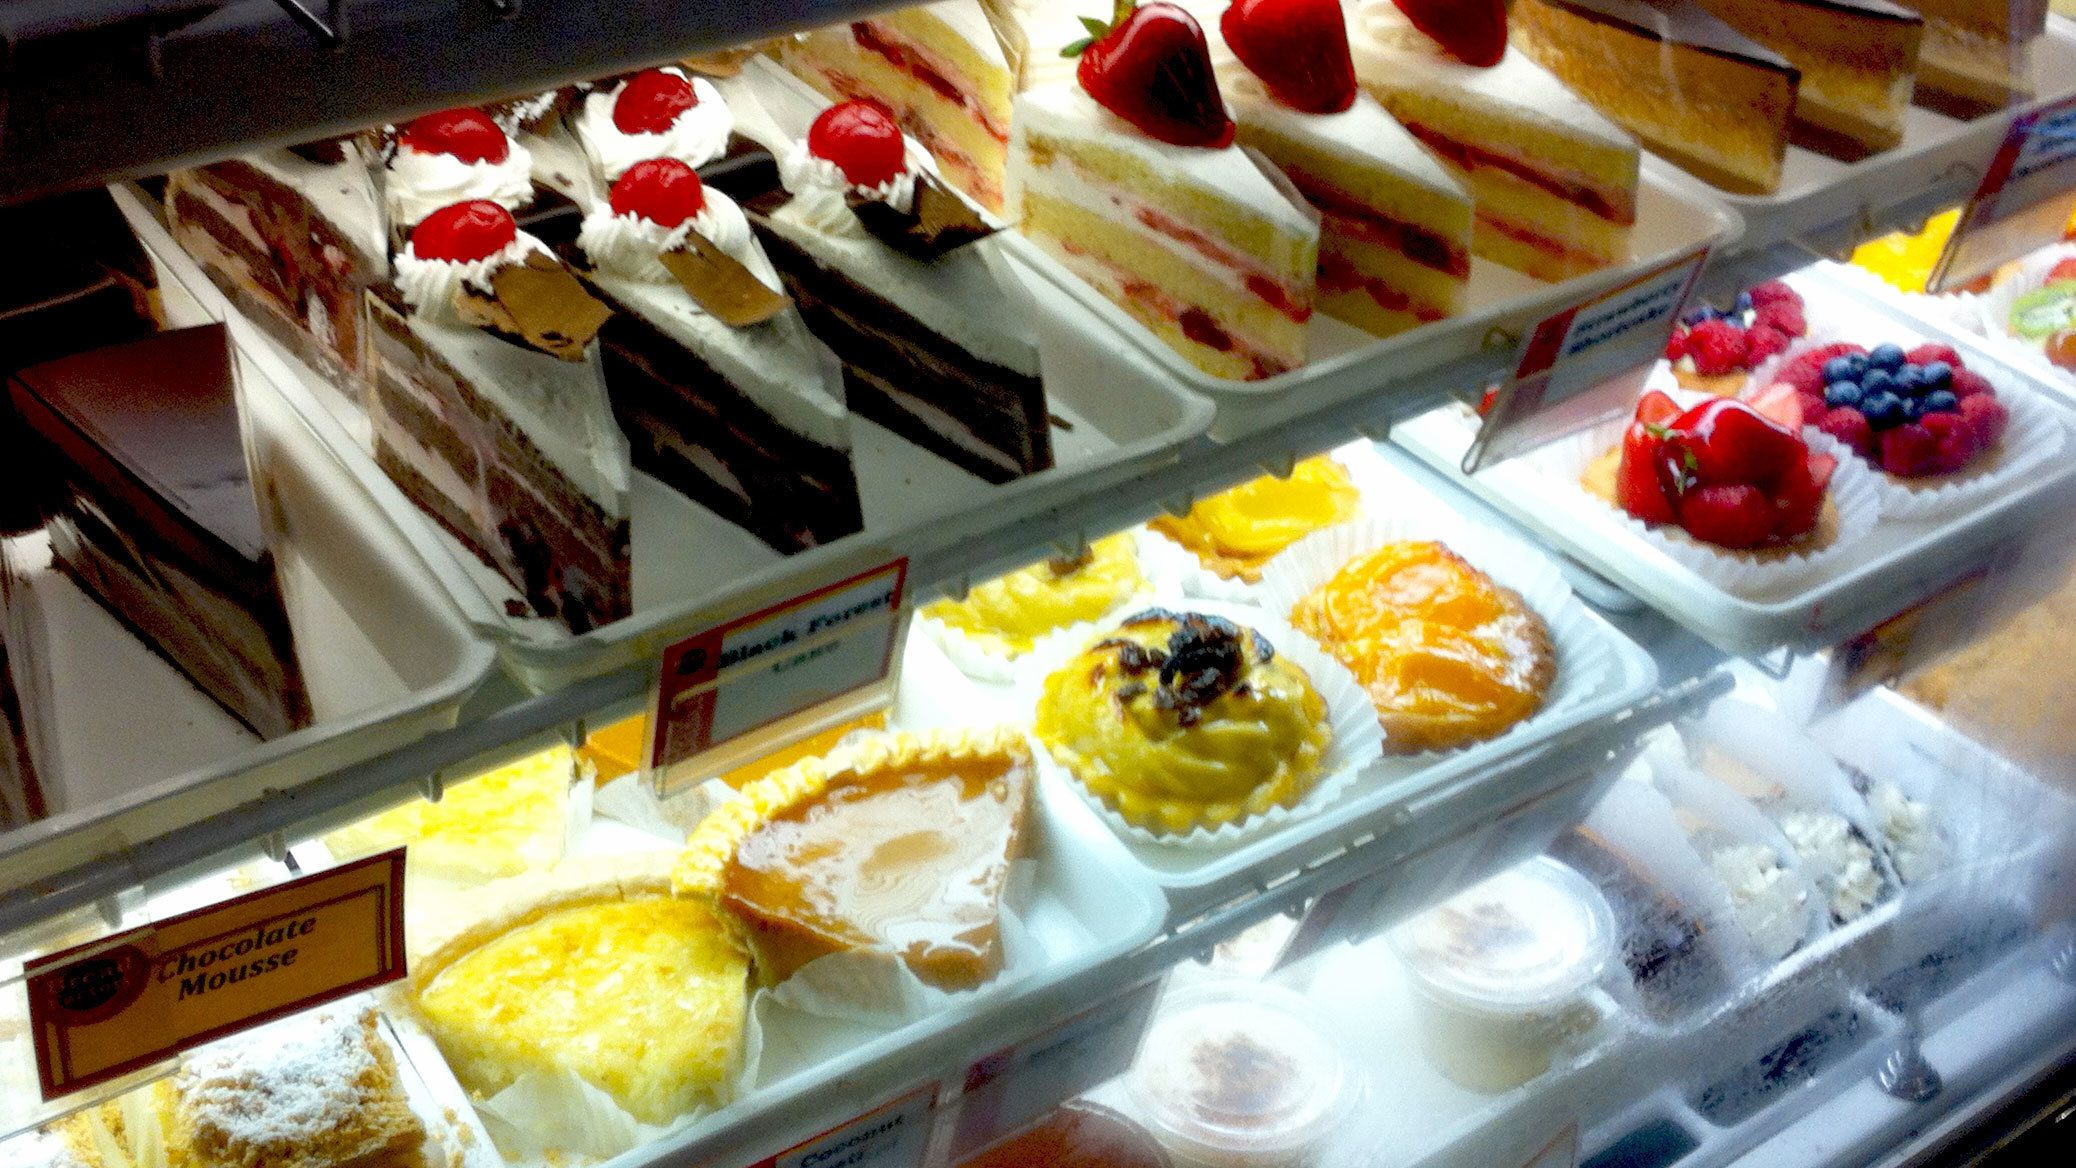 Pastry display case